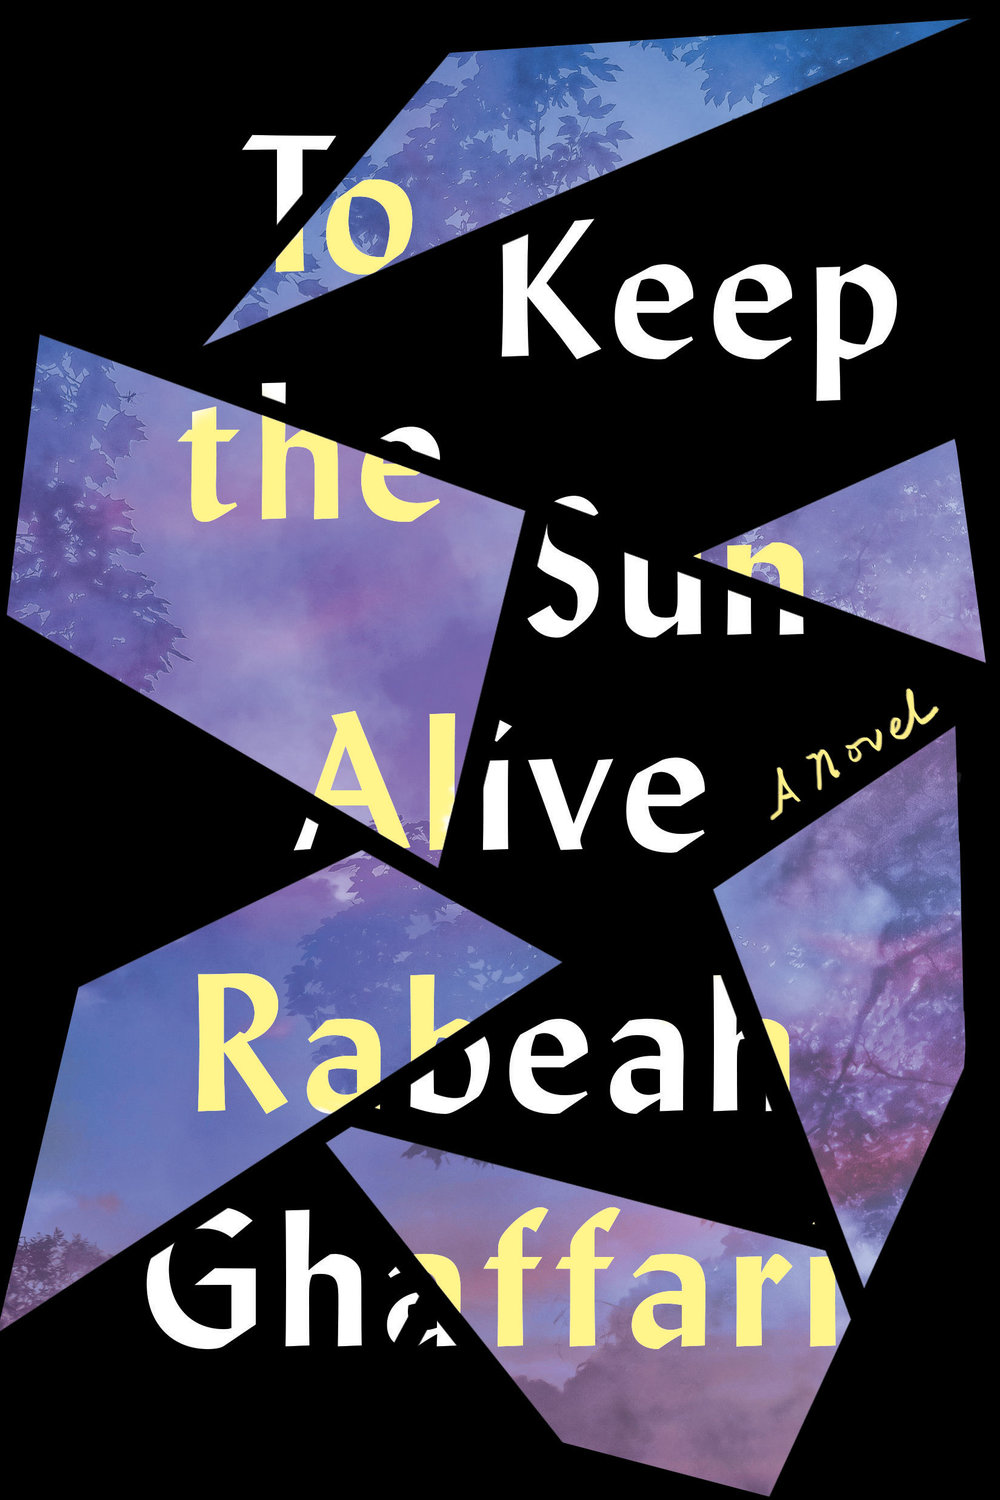 To-Keep-the-Sun-Alive_cvrs-4.jpg